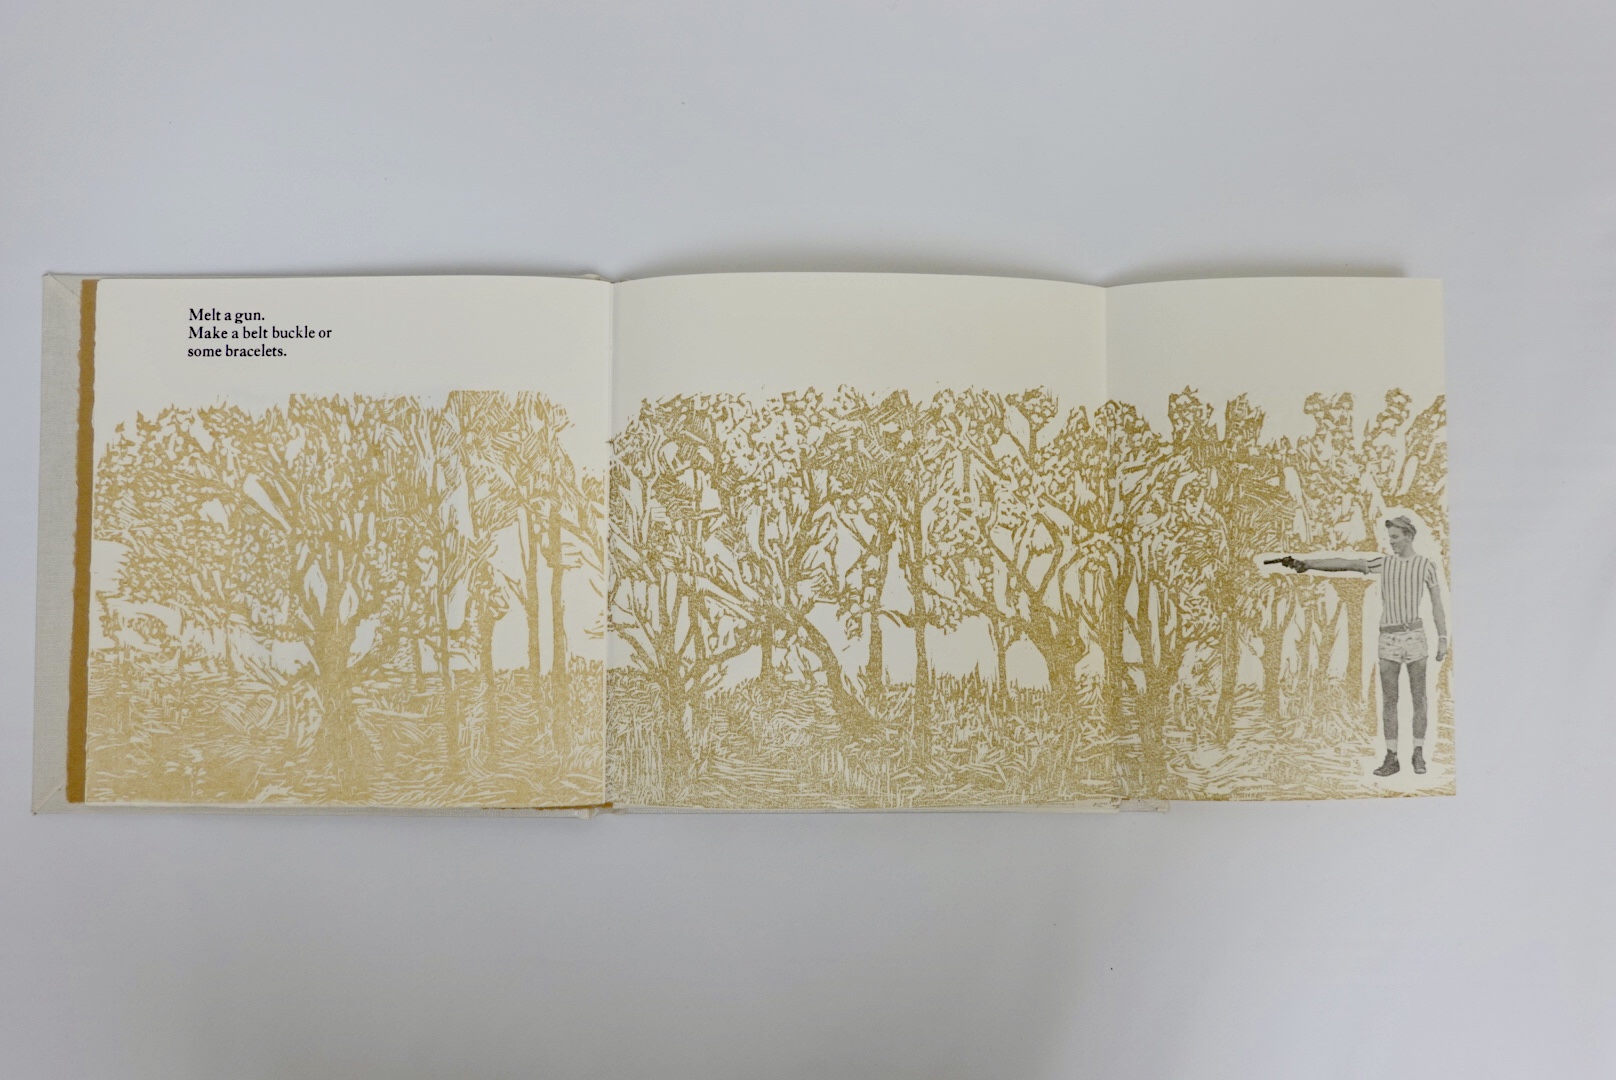 third page with woodcut relief of trees and fold out of boy image